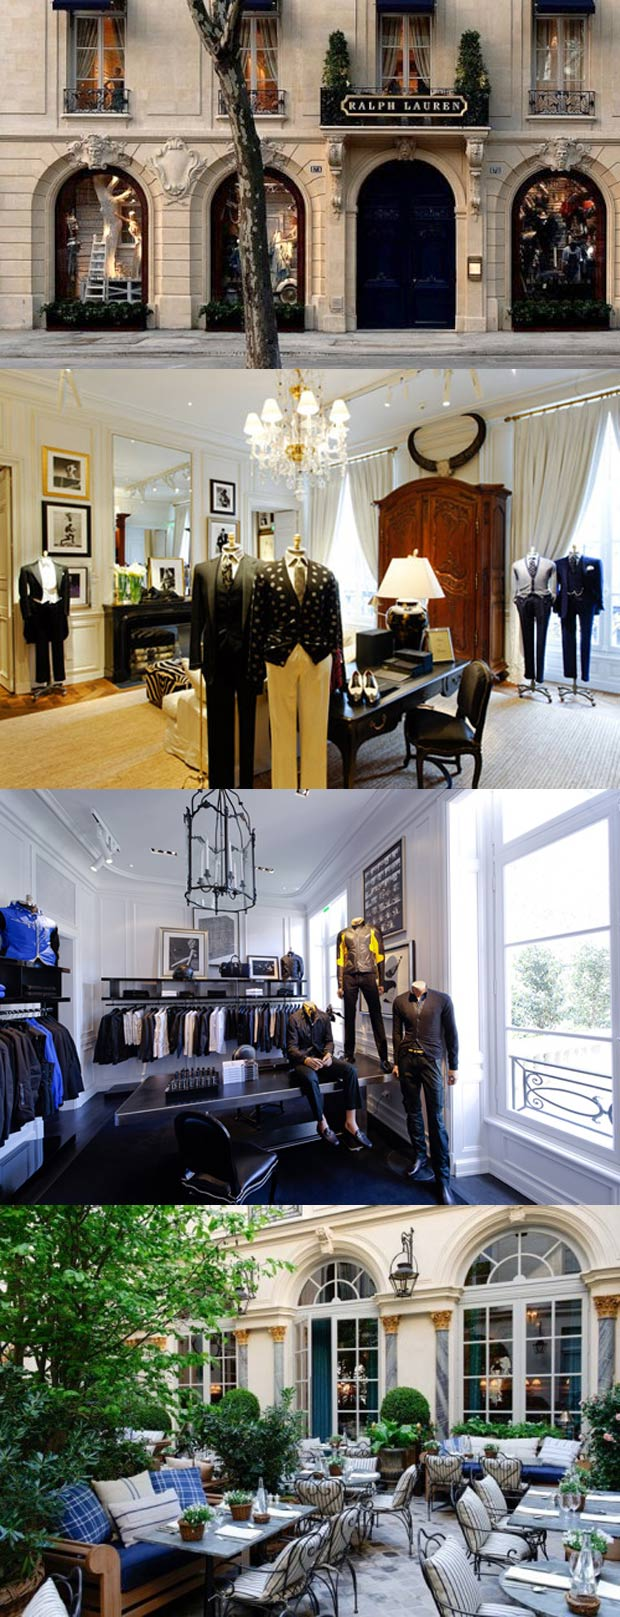 Ralph-Lauren-Saint-Germain-Des-Pres